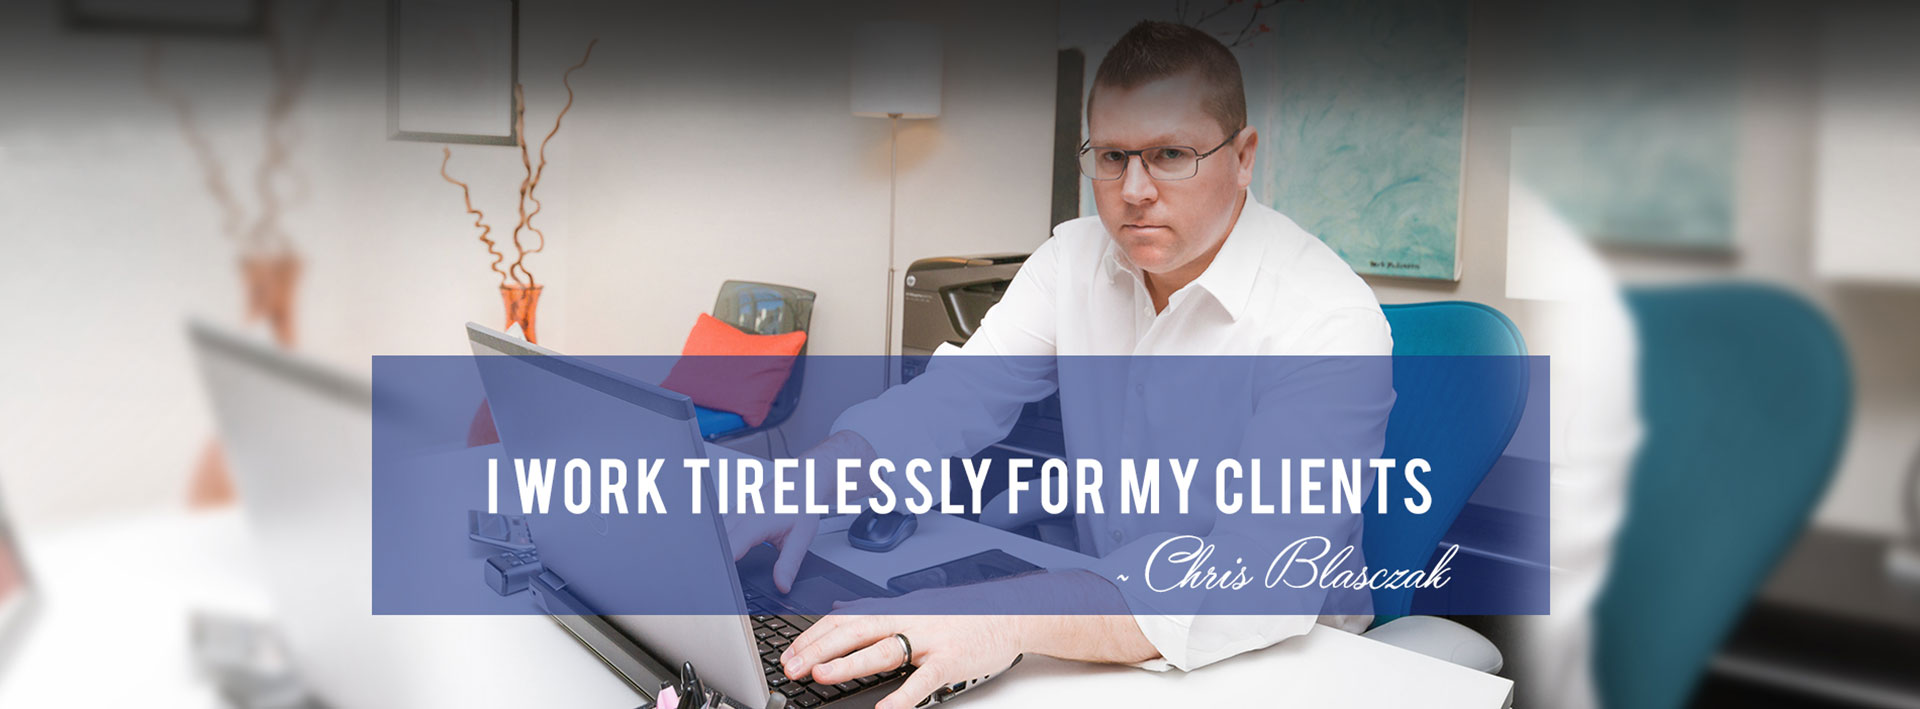 Chris Blasczak Works Tirelessly for his Clients